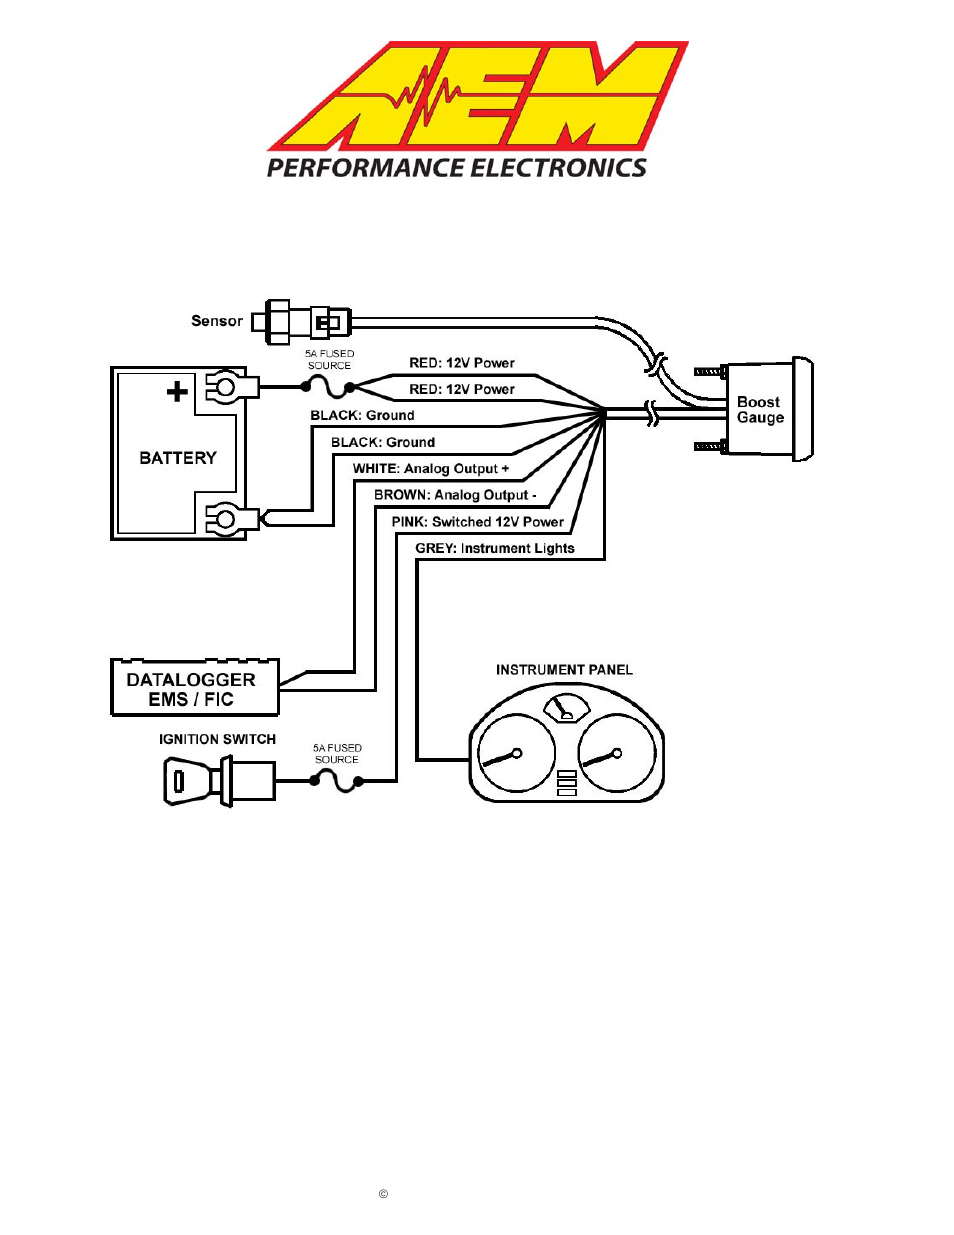 AEM 30-5132M Analog Boost Metric Gauge User Manual | 7 pages | Also for:  30-5132 Analog Boost SAE Gauge